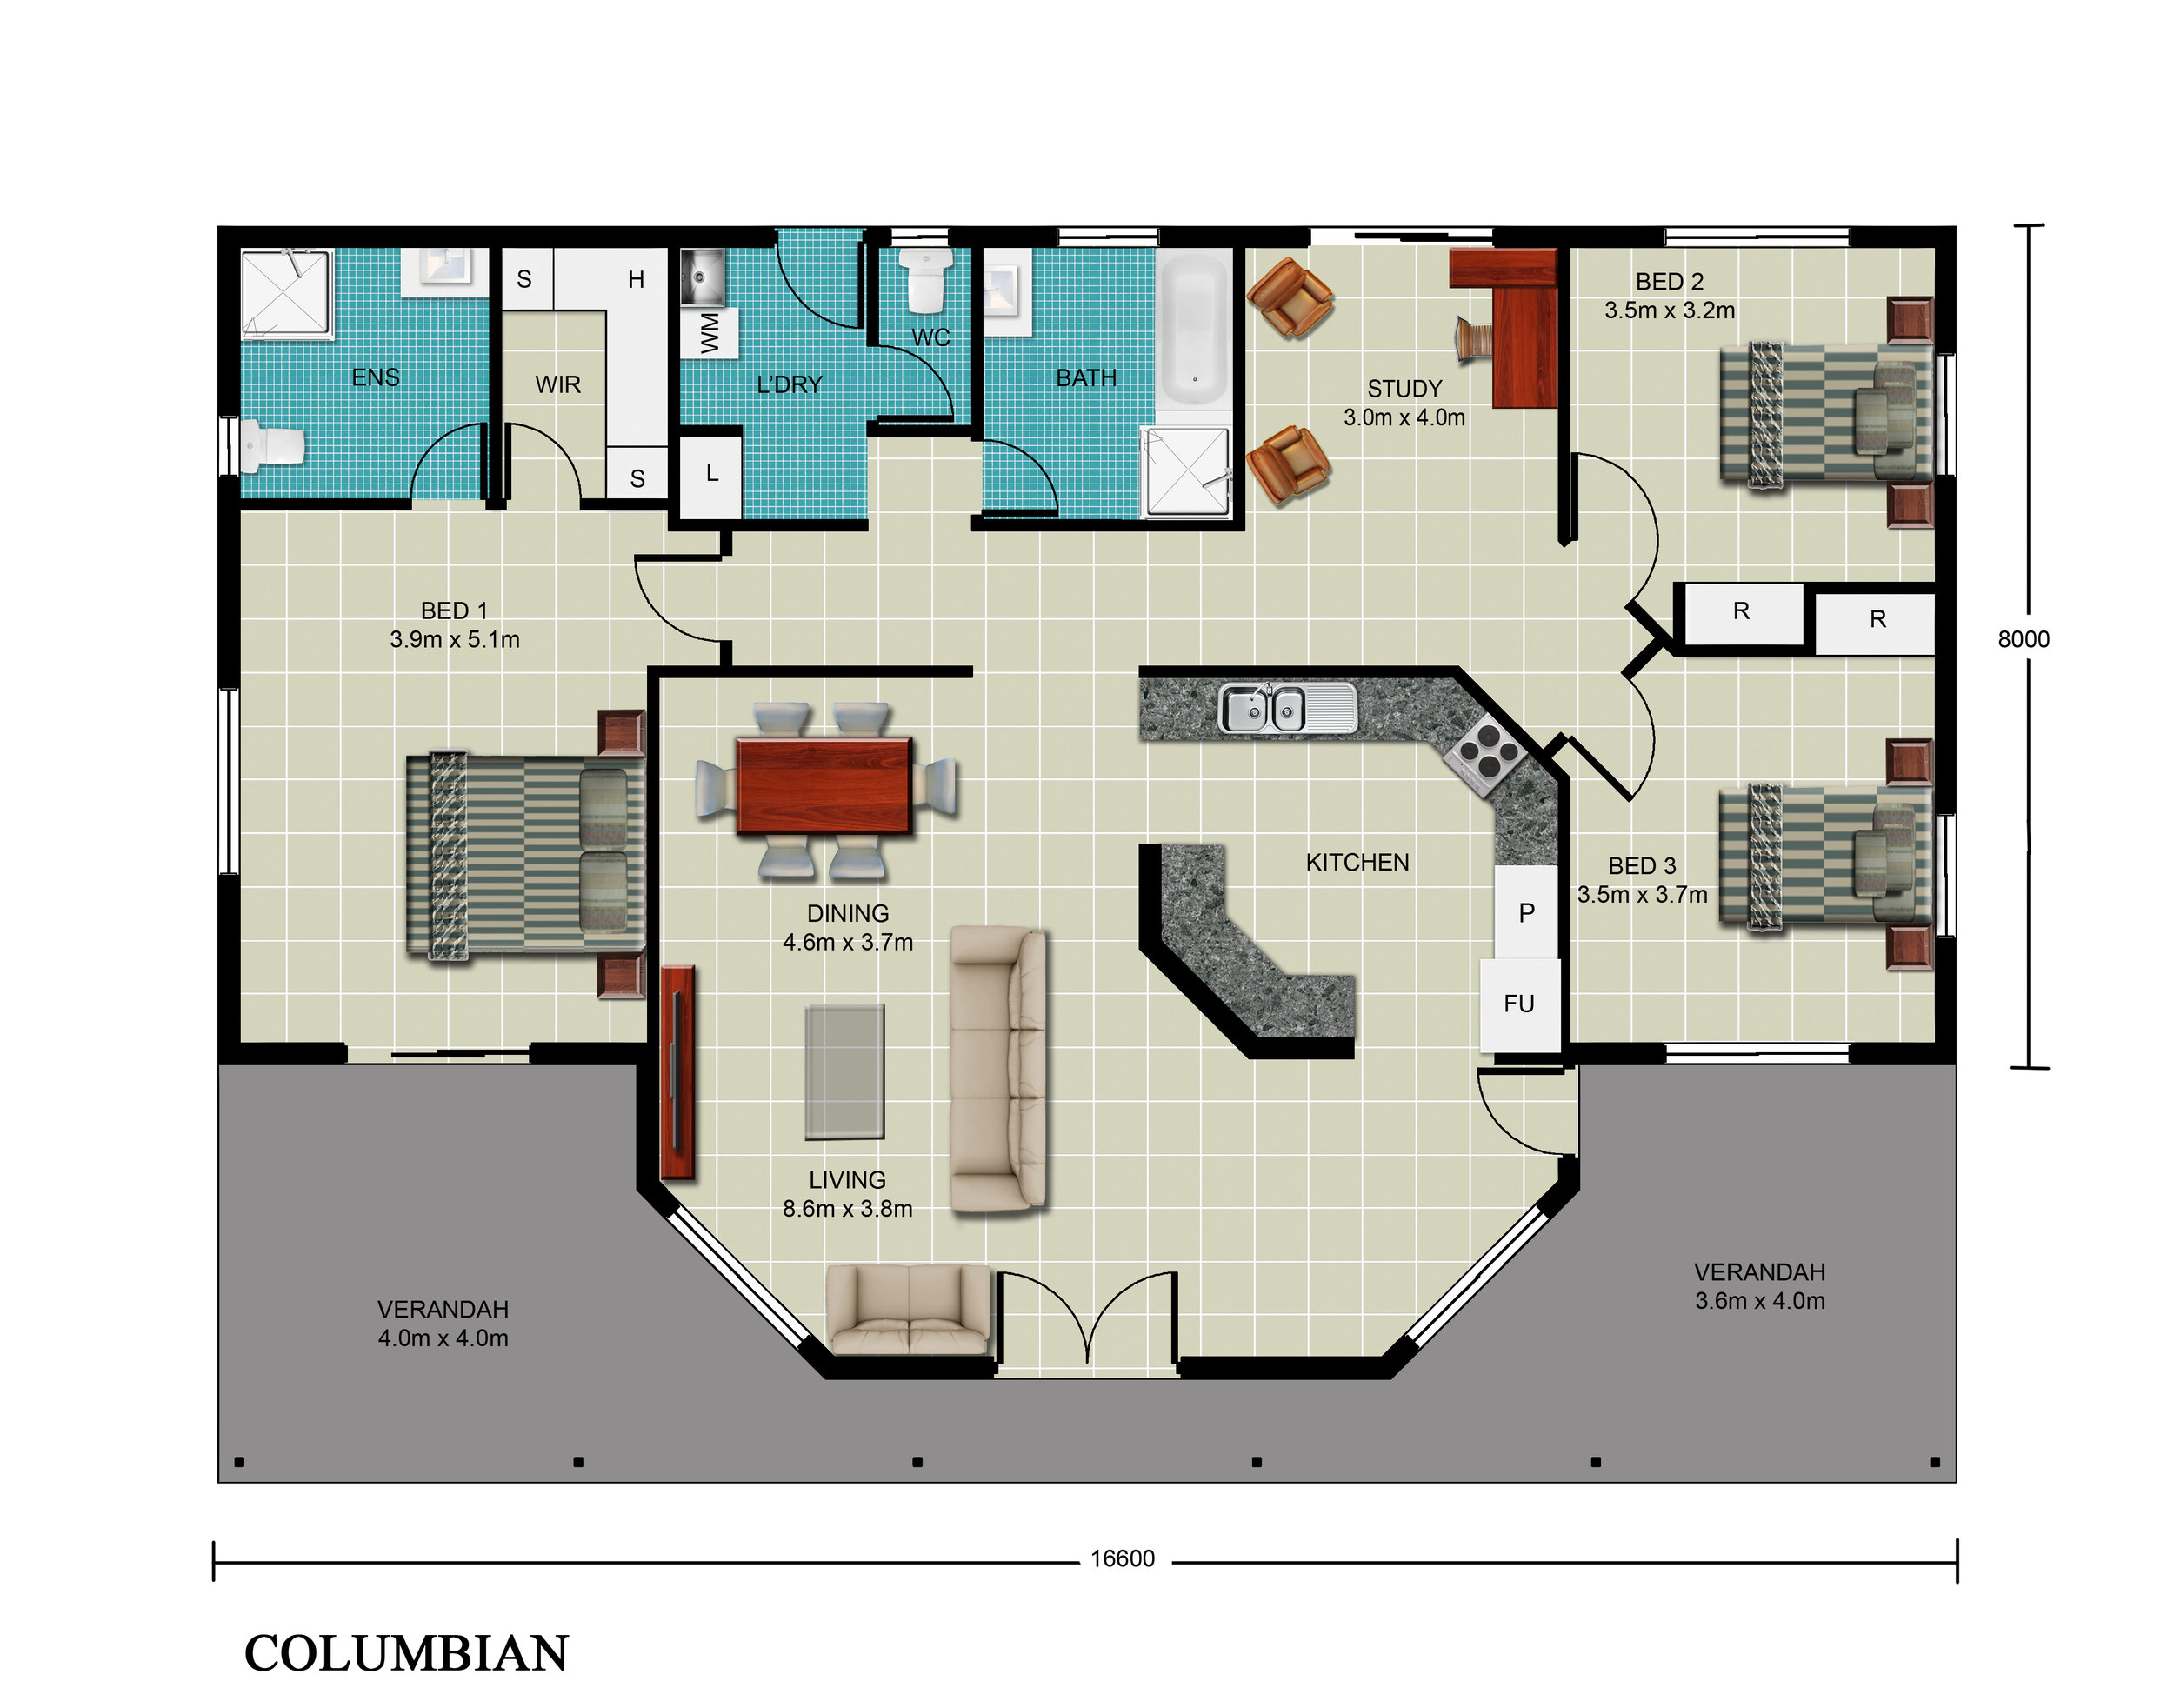 Columbian Floor Plan